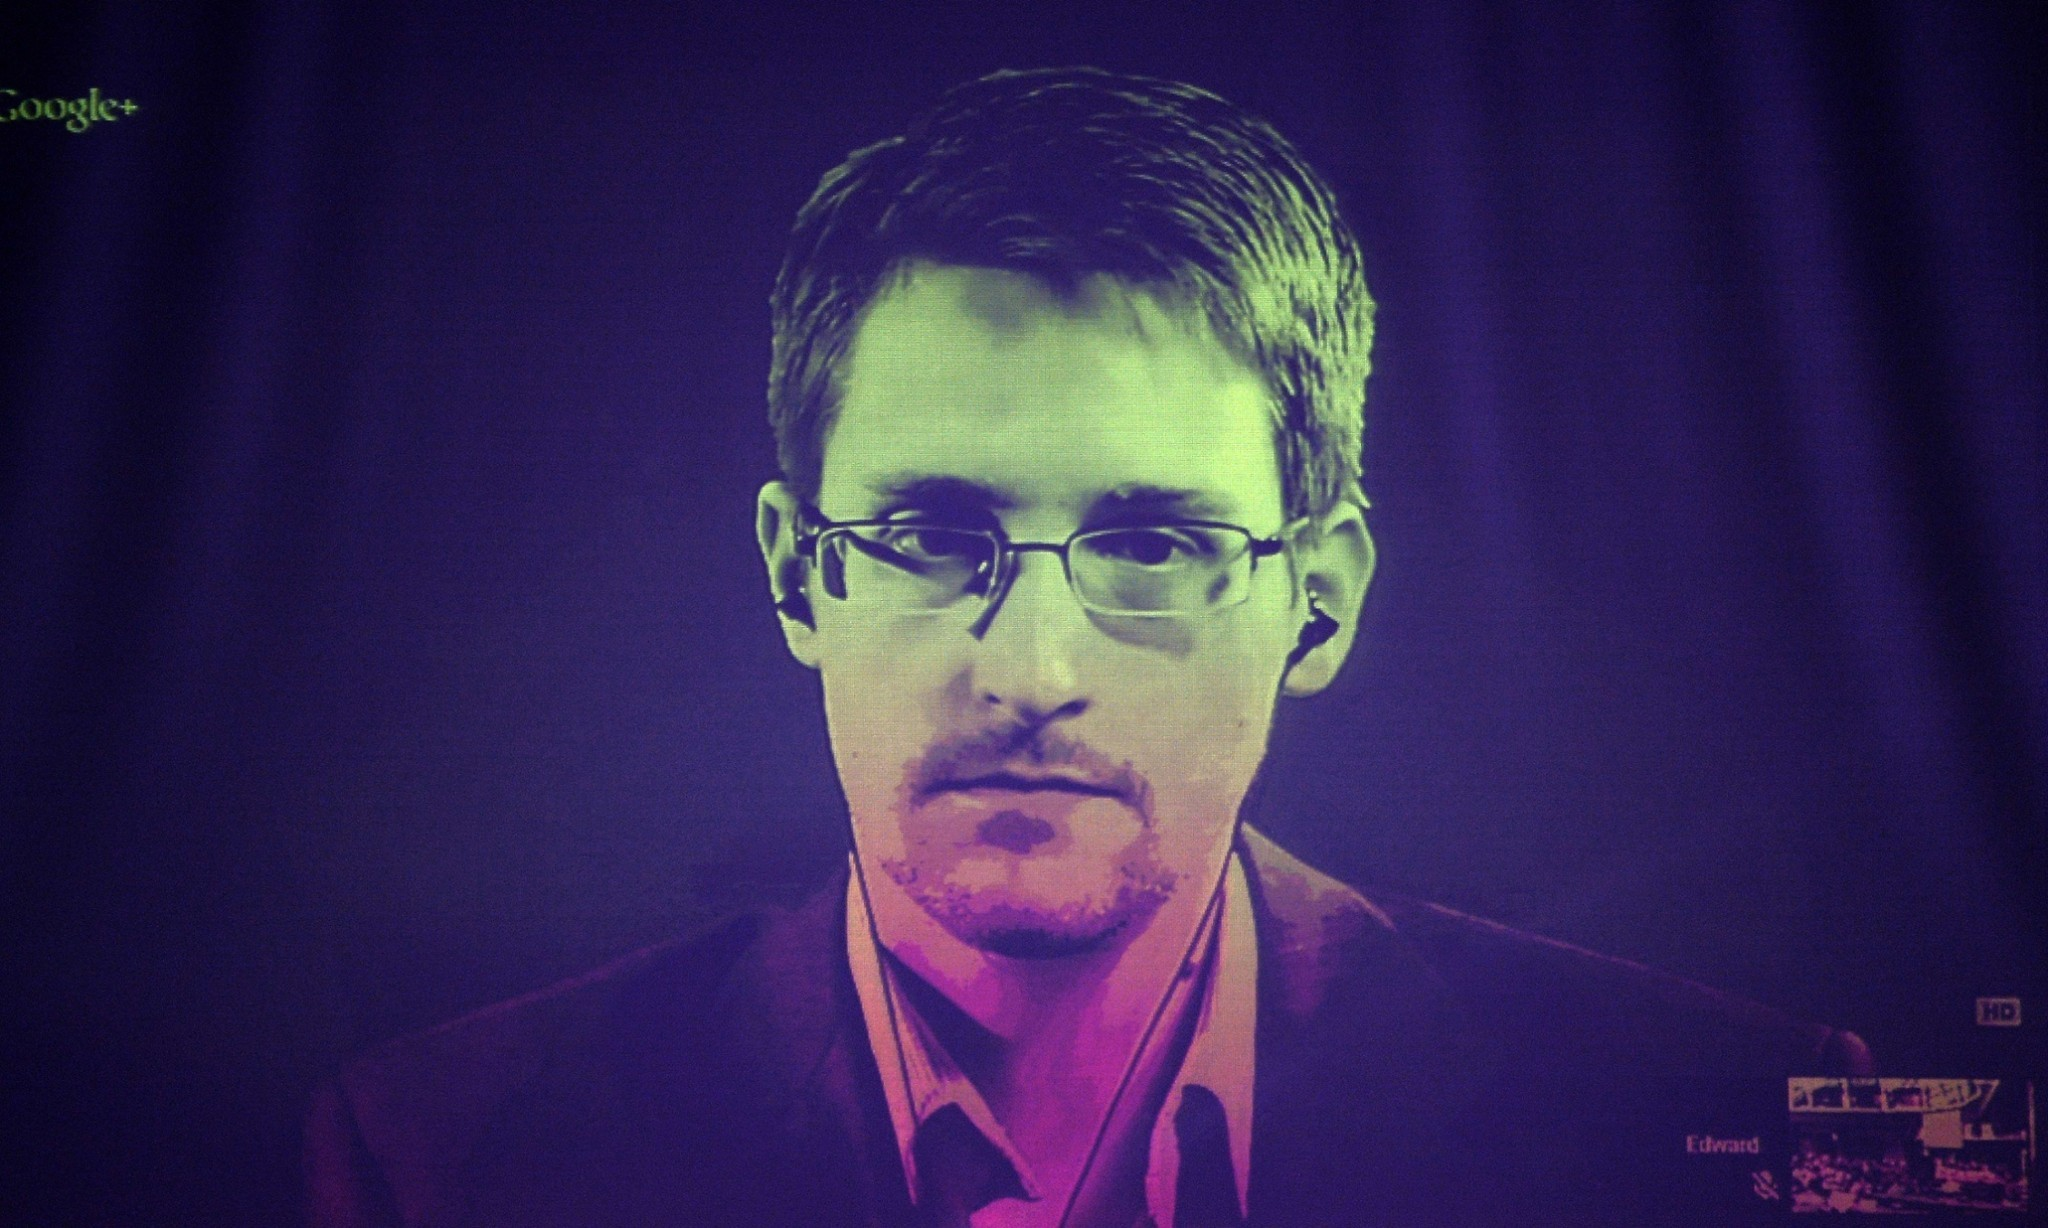 Facebook, Google and Apple lobby for curb to NSA surveillance